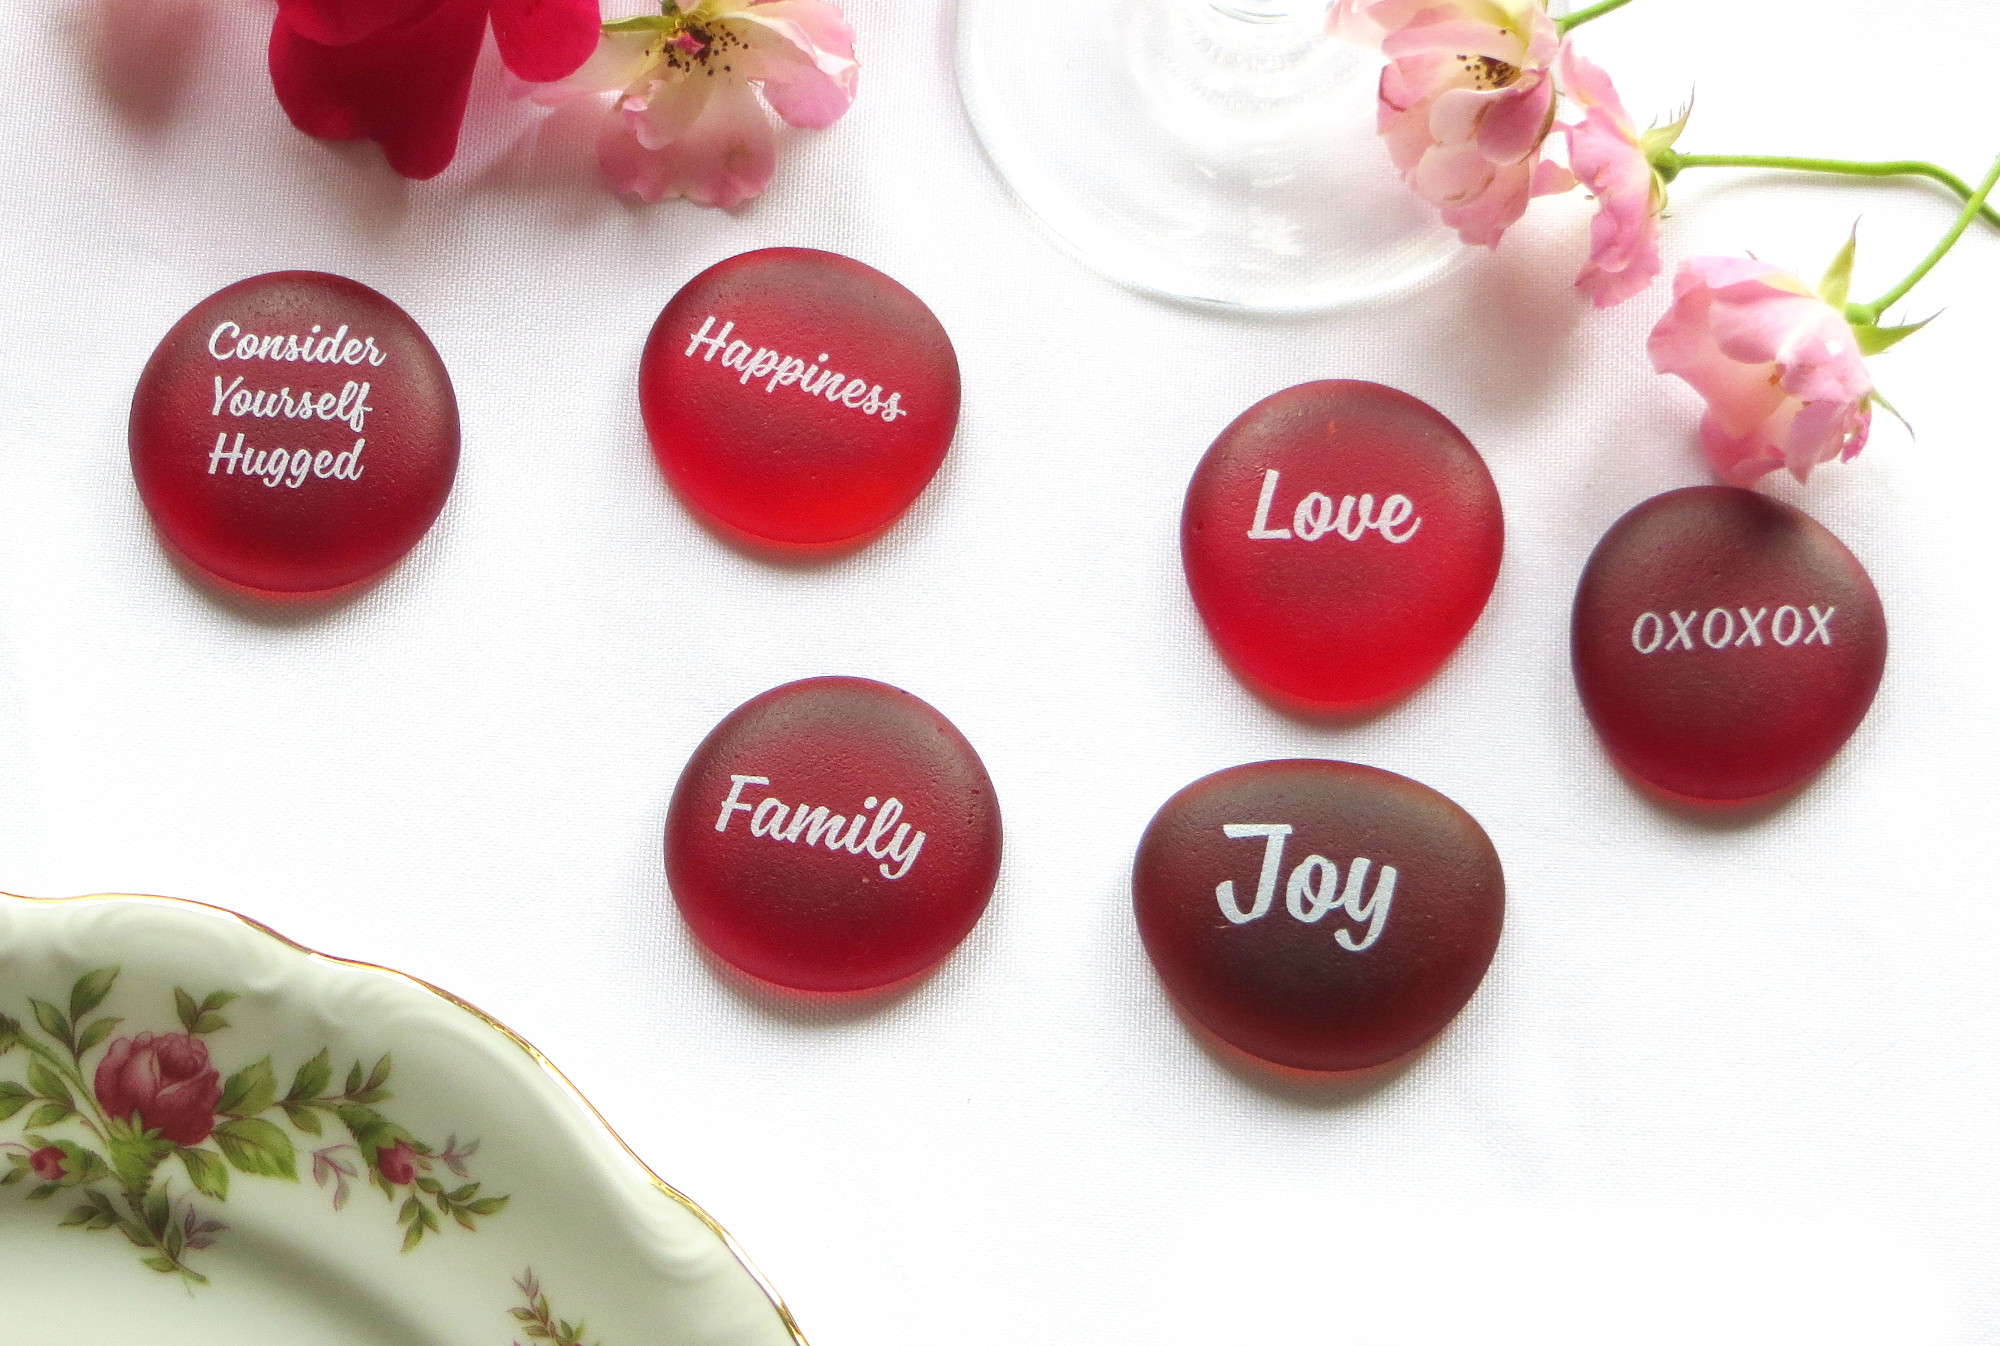 Wedding Stones- How we determined the sayings.